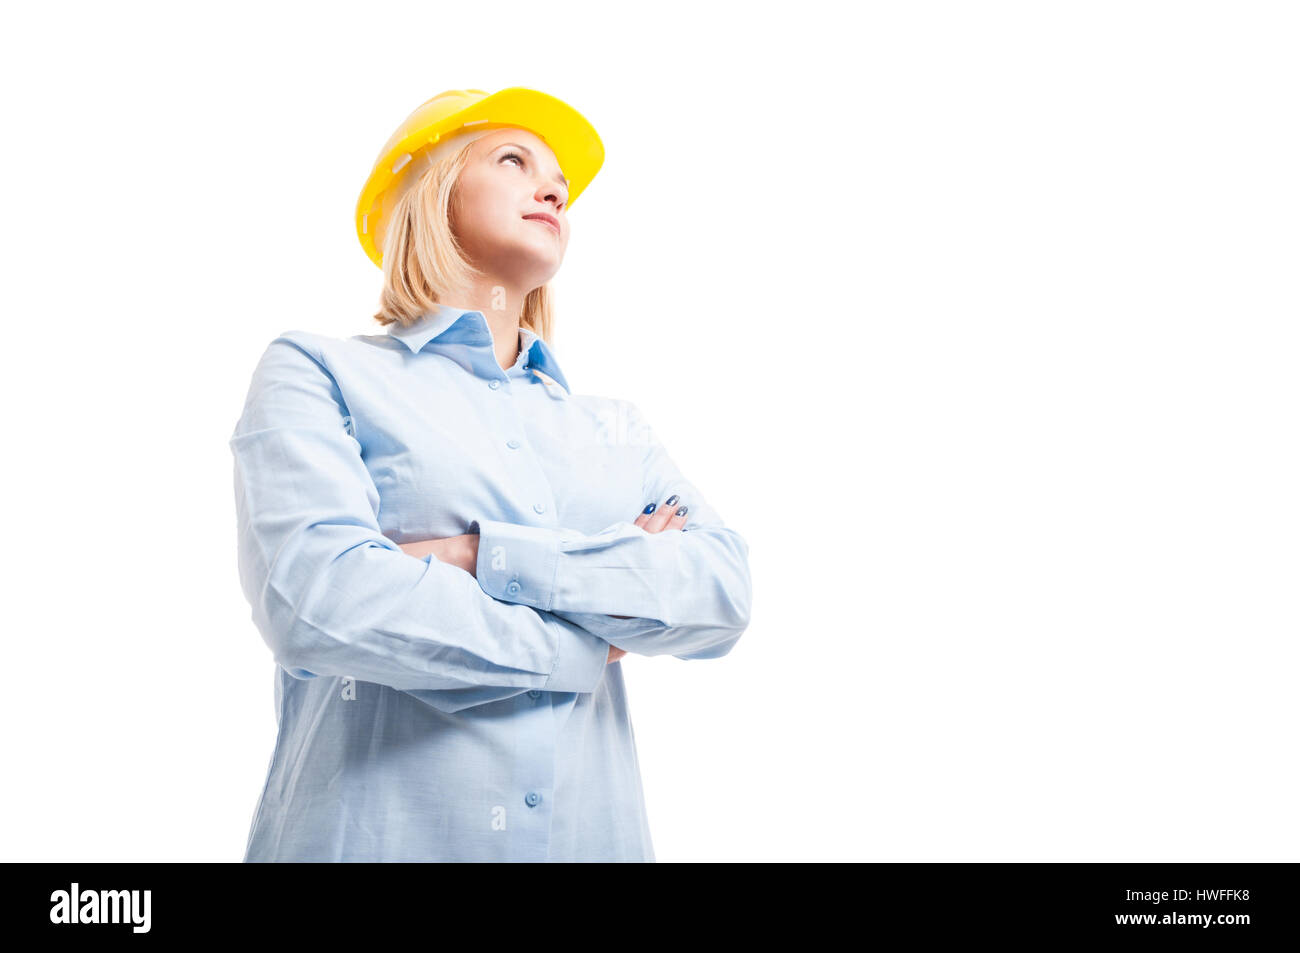 low angle hero shot of female engineer posing with arms crossed being serious isolated on white background with - Stock Image